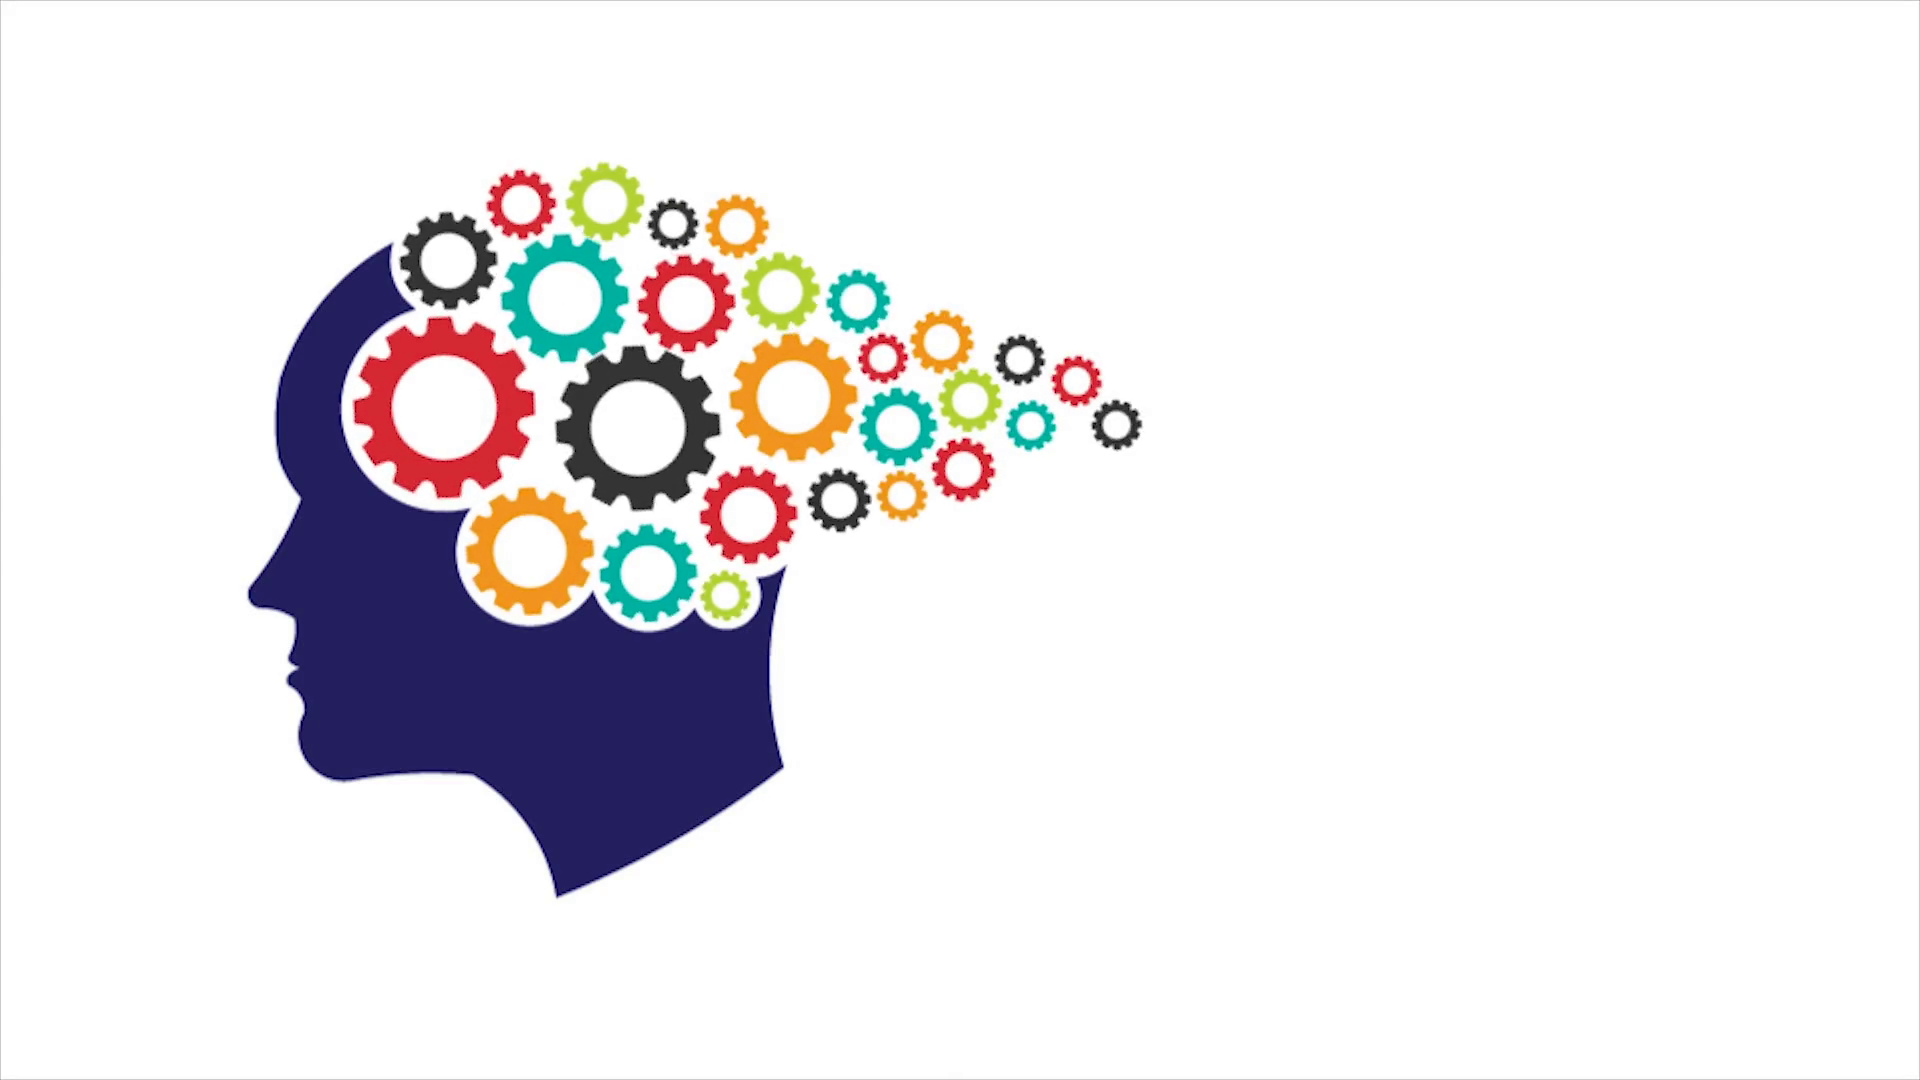 Thinking Brain Png Hd Transparent Thinking Brain Hdpng Images